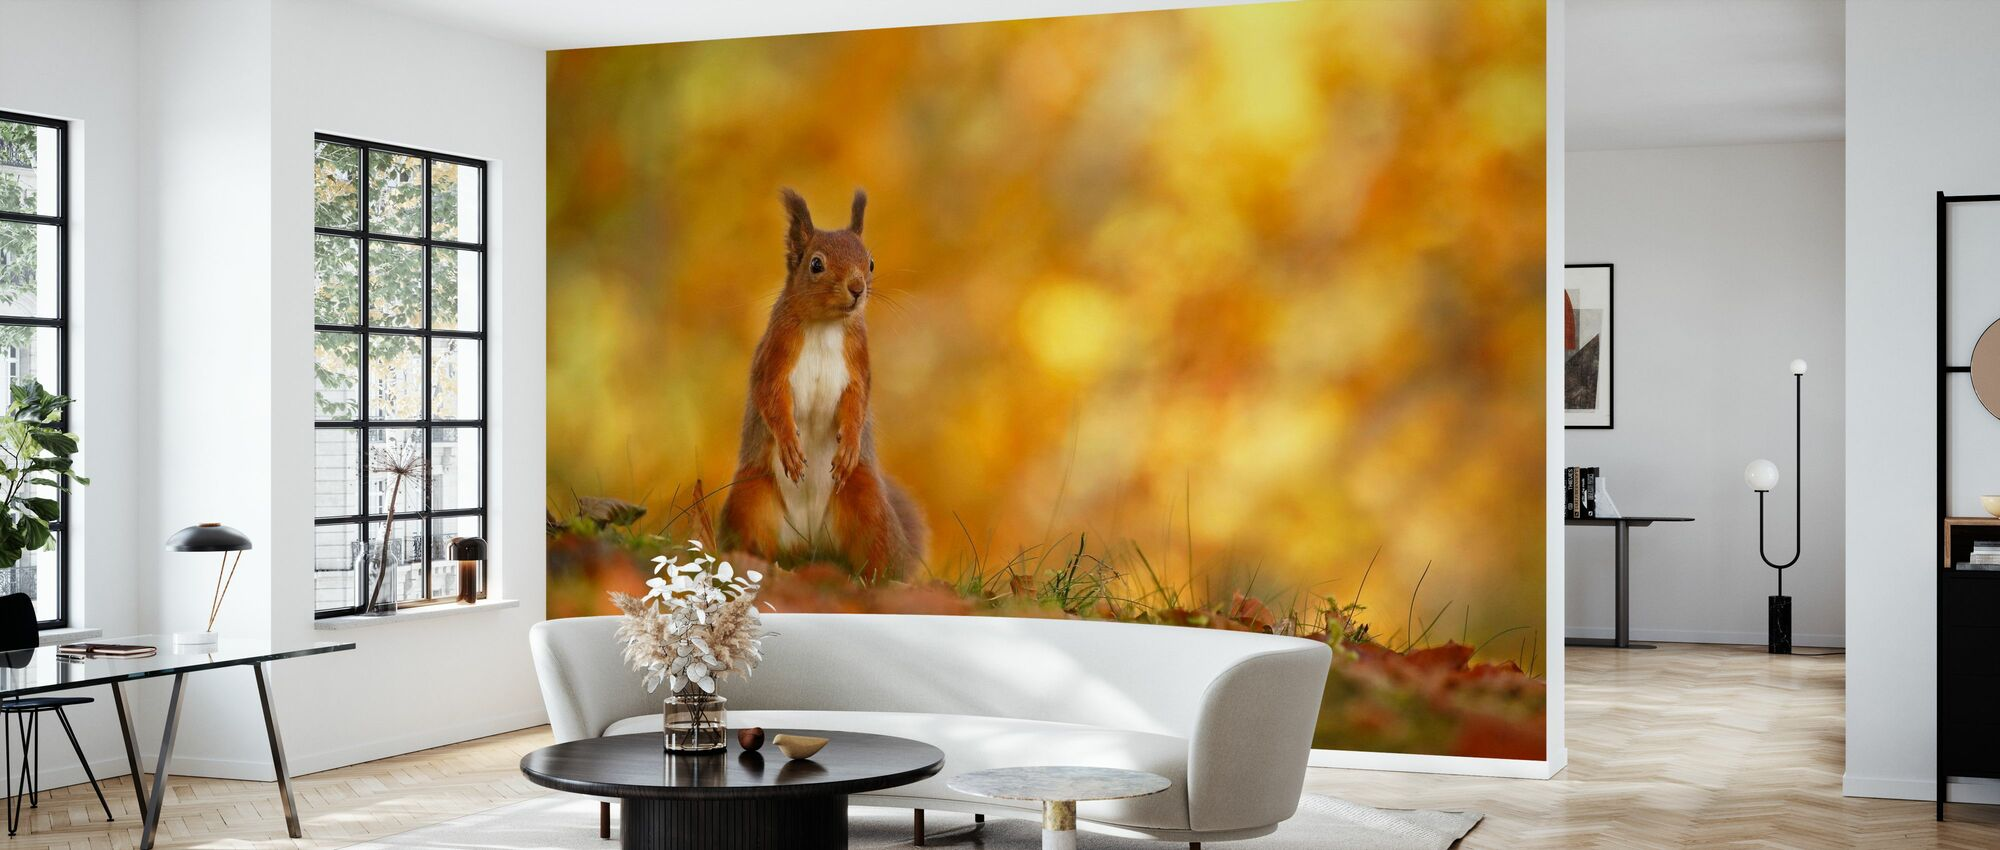 Red Squirrel on Forest Floor - Wallpaper - Living Room